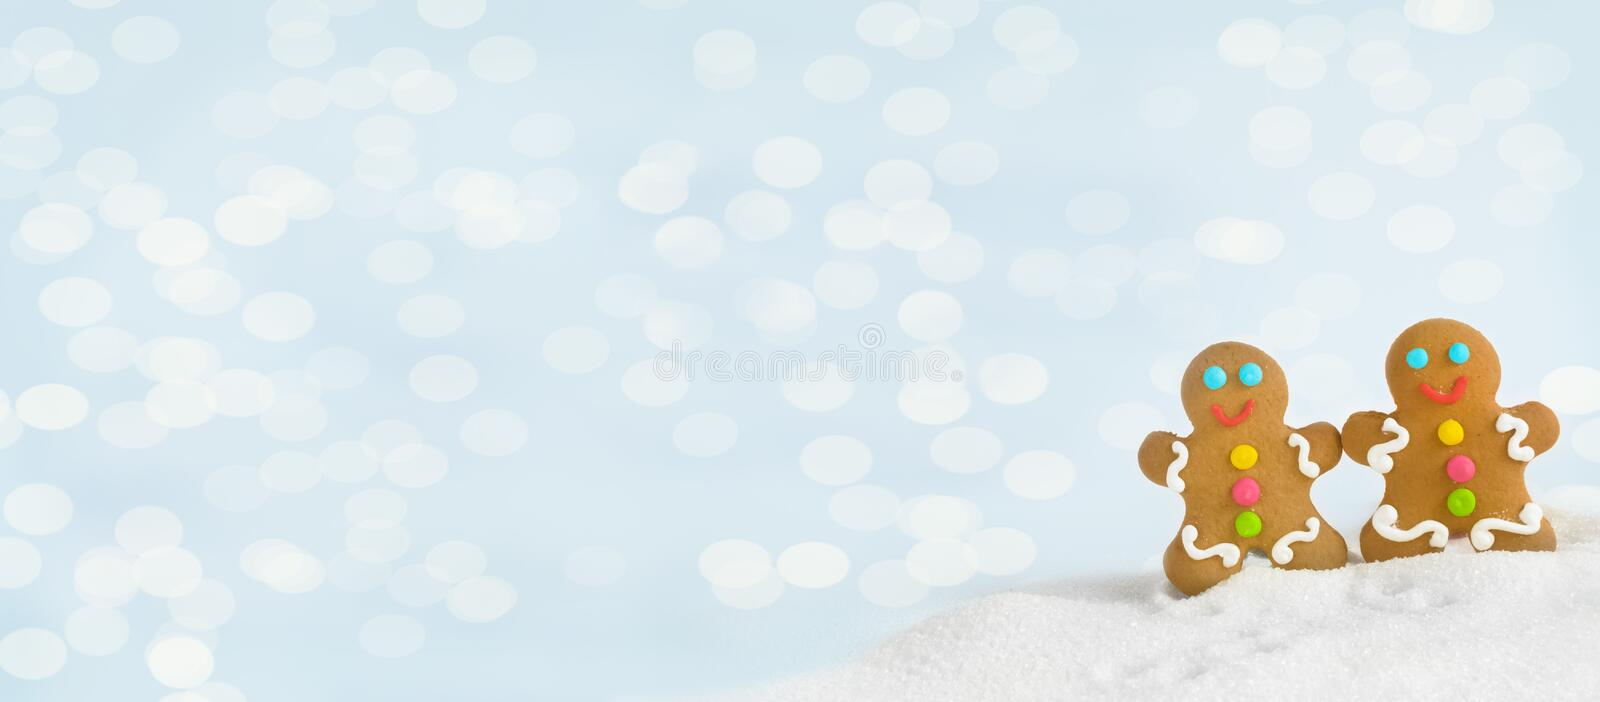 Christmas gingerbread men on the background lights stock photos